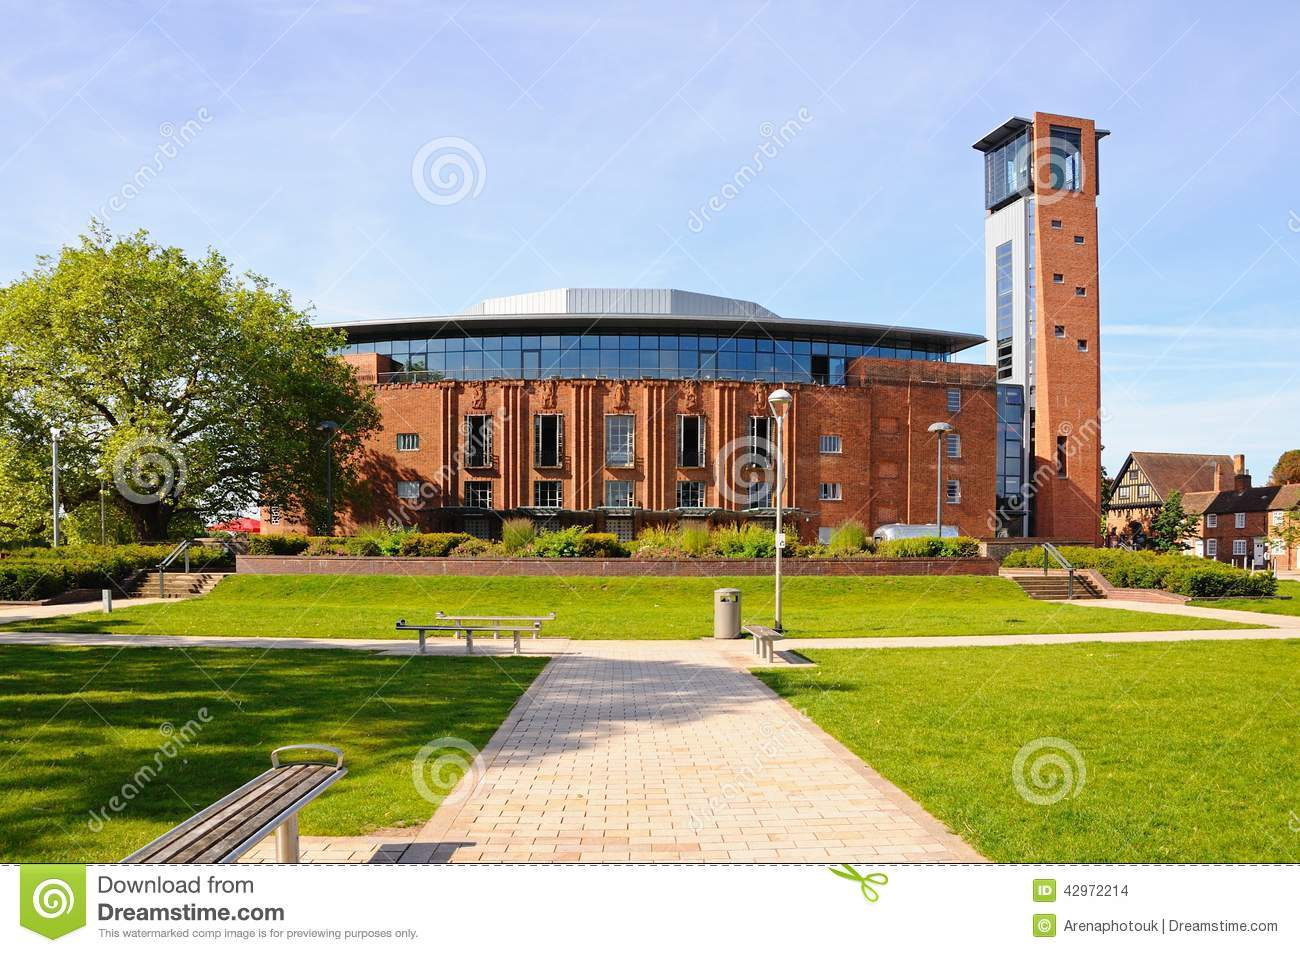 Royal shakespeare theatre stratford upon avon stock for The stratford